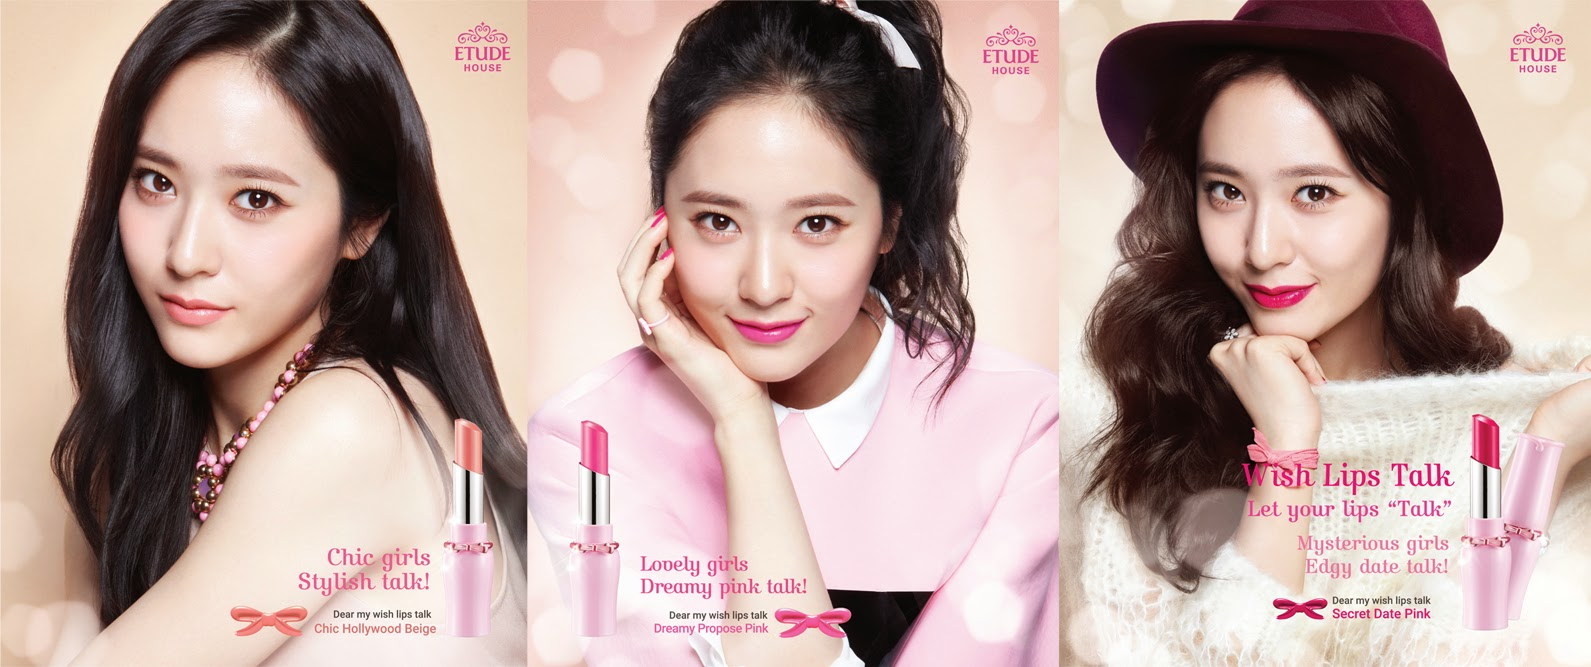 Etude House's Dear My Wish Lips-Talk